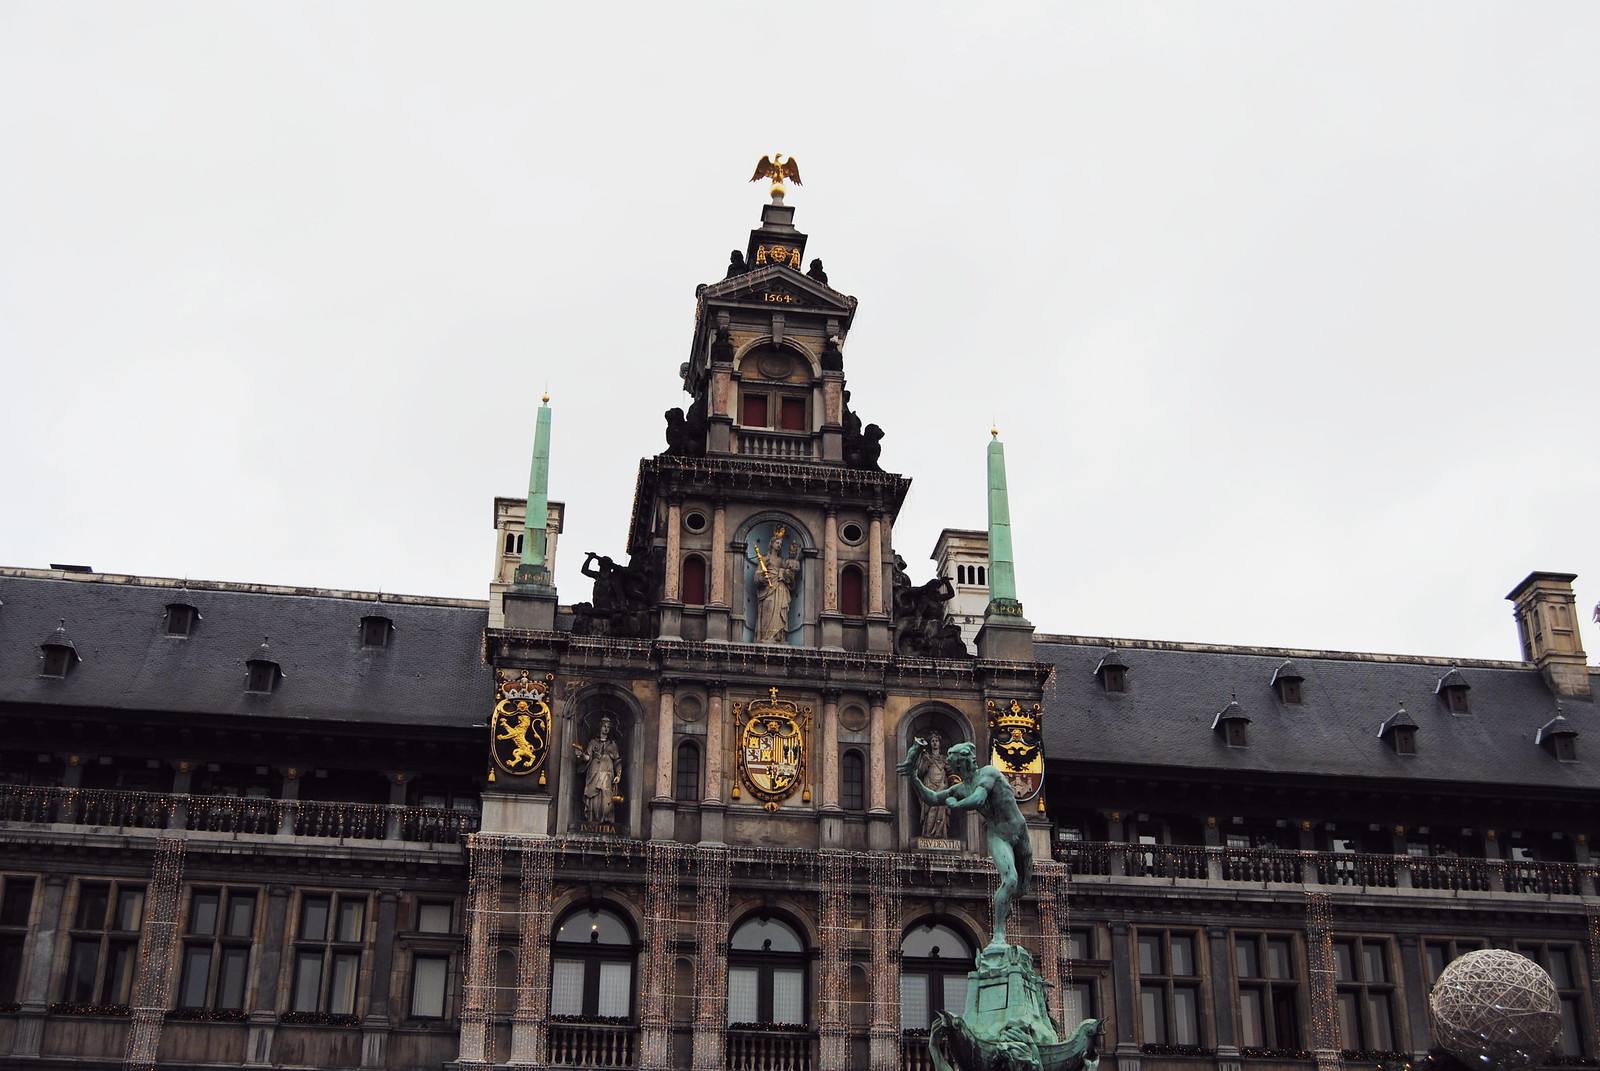 A view of the Antwerp City Hall (facade).